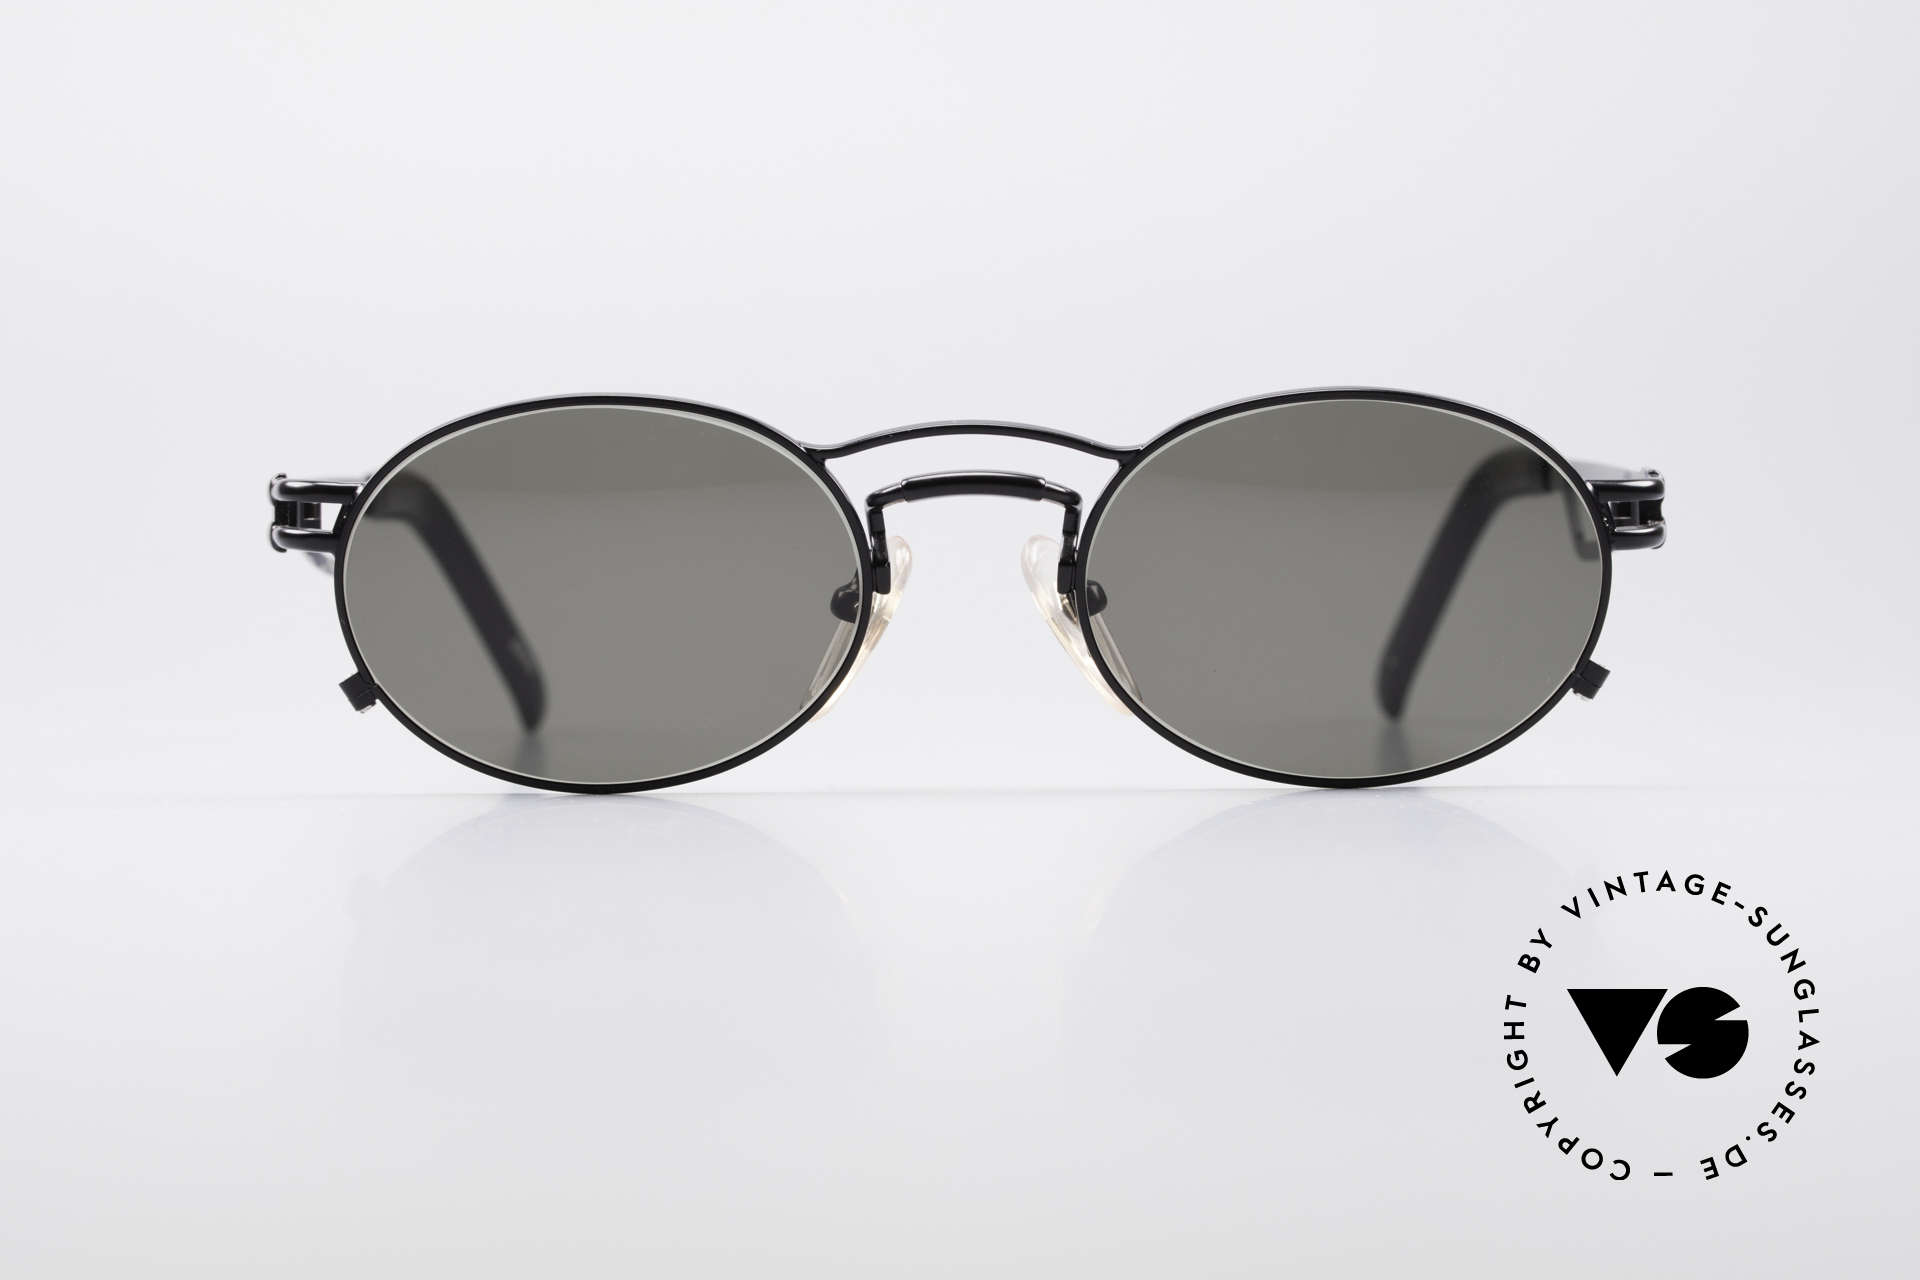 Jean Paul Gaultier 56-3173 Oval Vintage Sunglasses, oval lens shape and with superior wearing comfort, Made for Men and Women